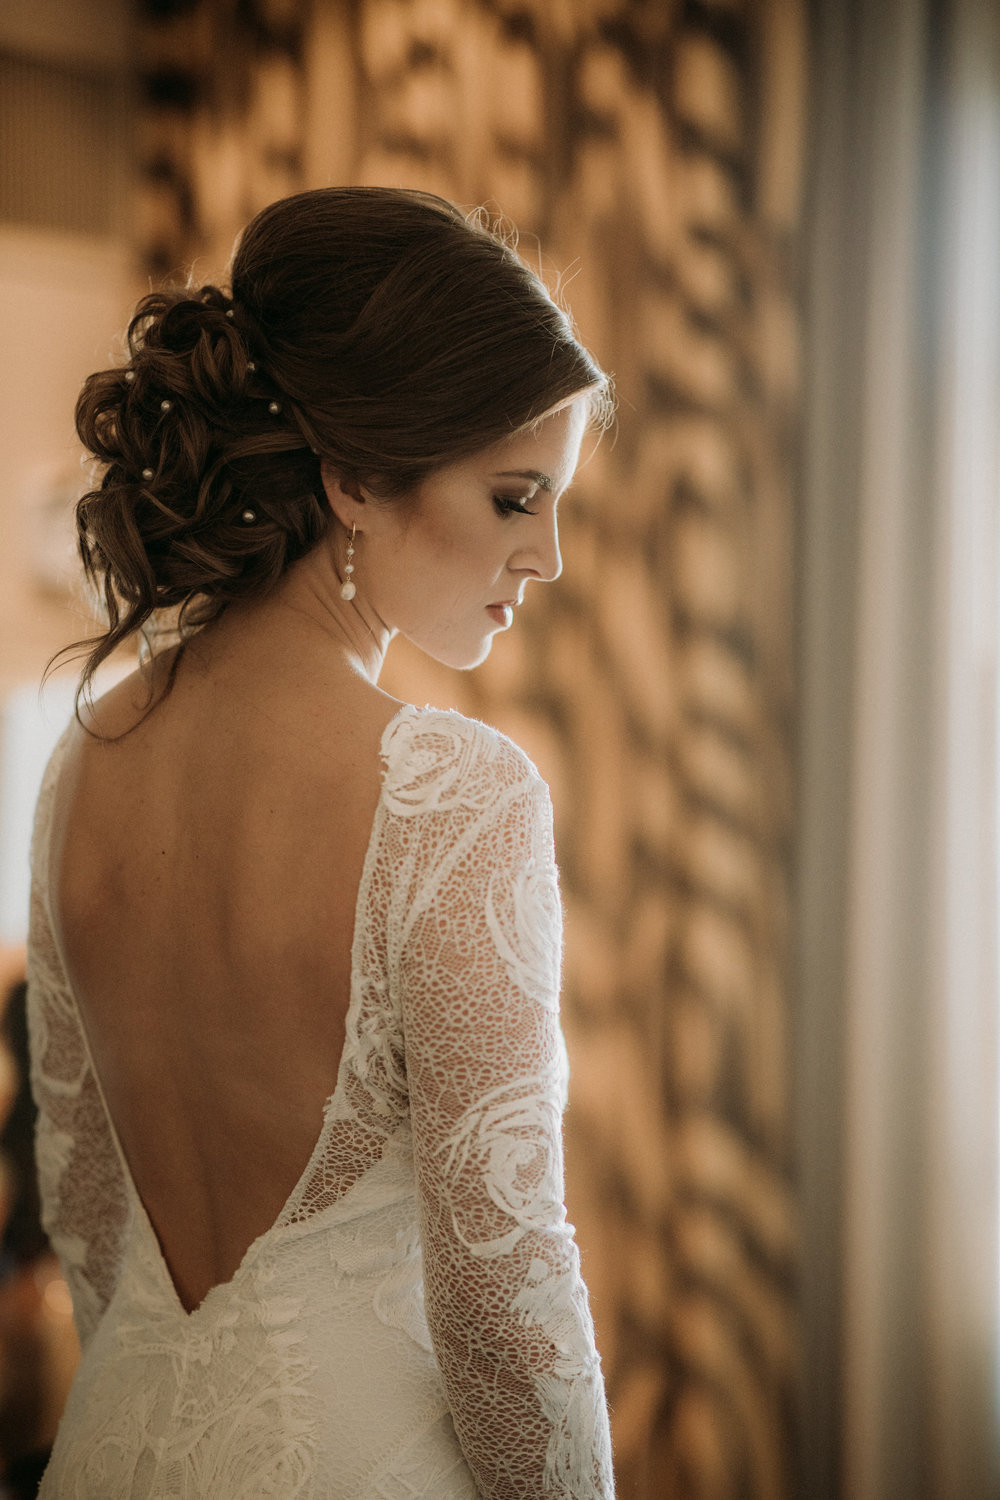 Bridal shot looking into distance, makeup by betty rose makeup artist